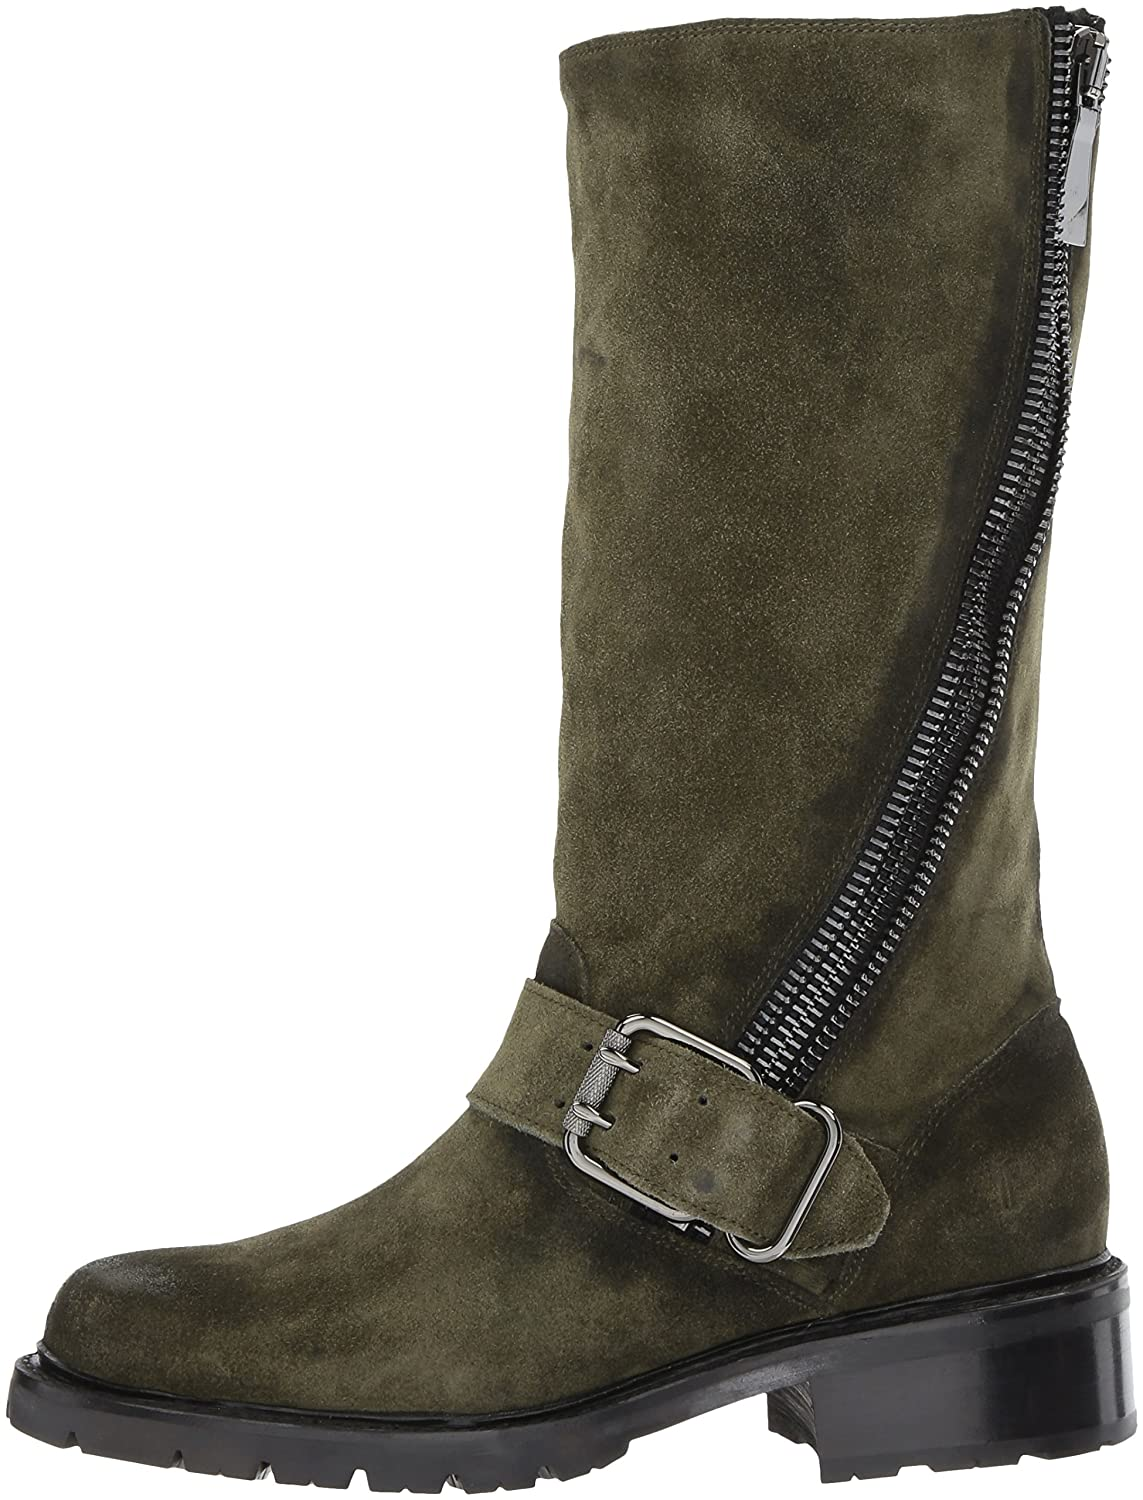 FRYE Women's Samantha Zip Tall Motorcycle Boot B01MR2ERUY Oiled 10 B(M) US|Forest Soft Oiled B01MR2ERUY Suede 46c55e